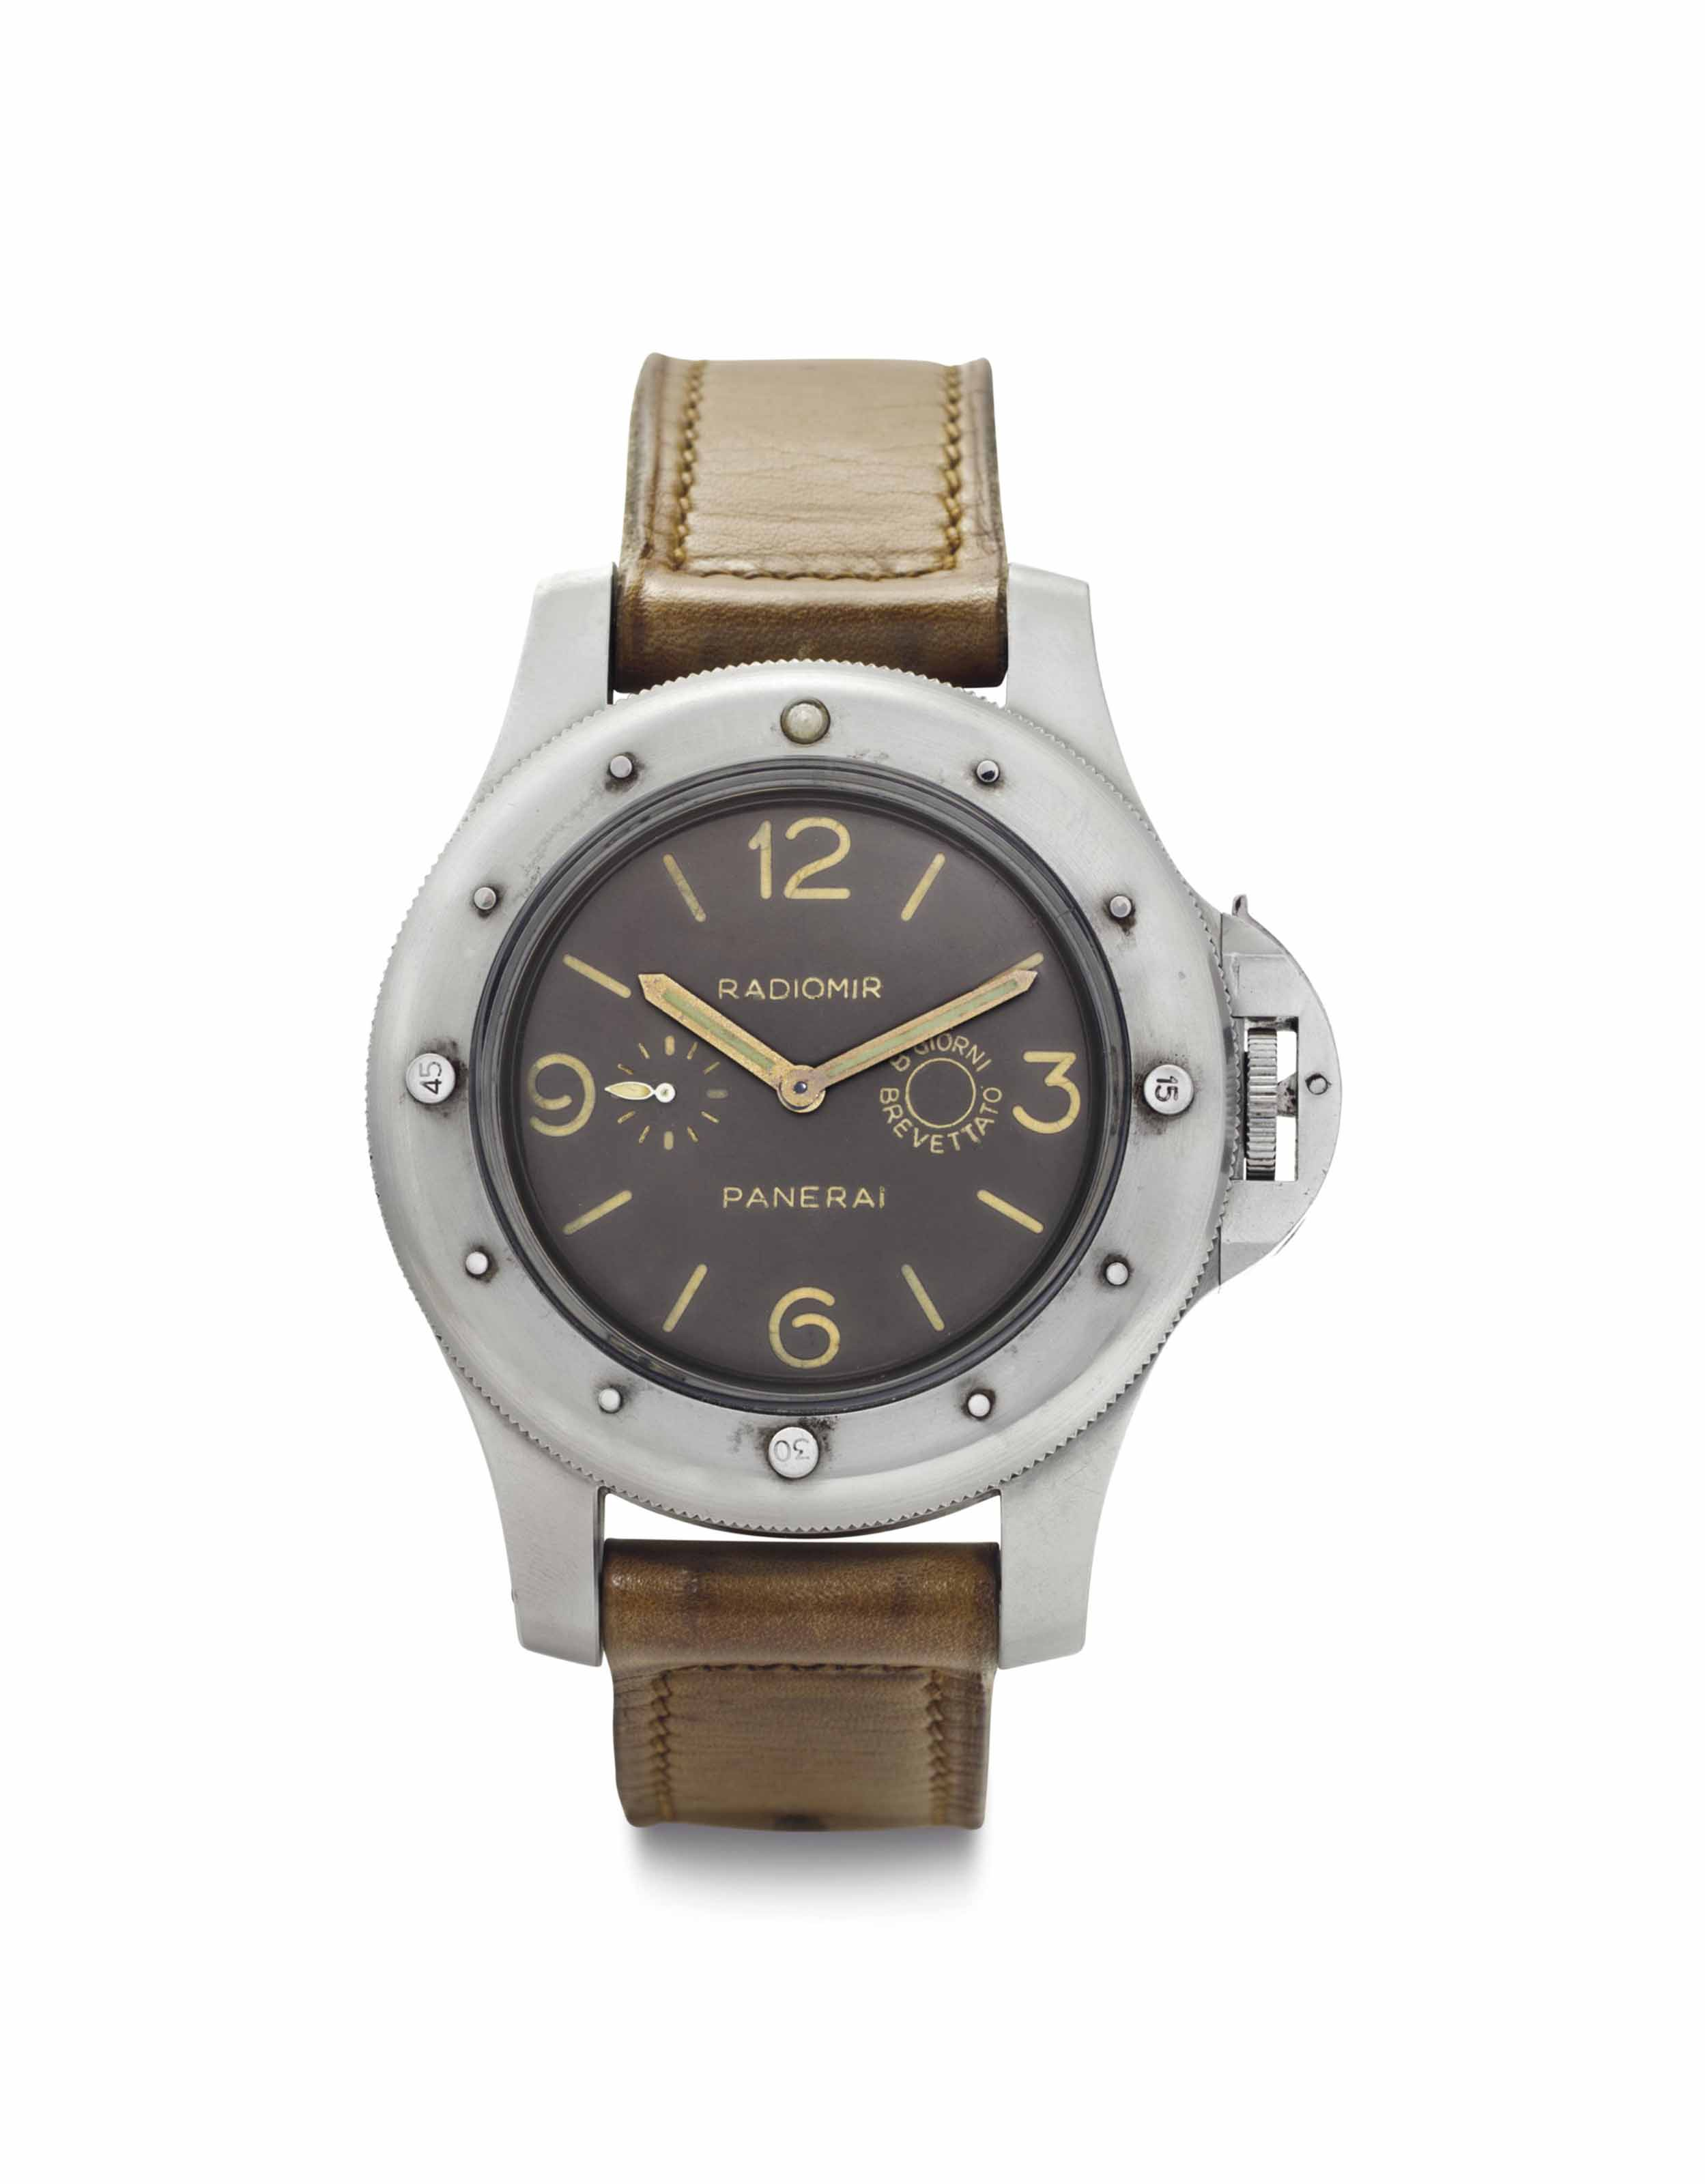 Panerai. An Extremely Rare Ove